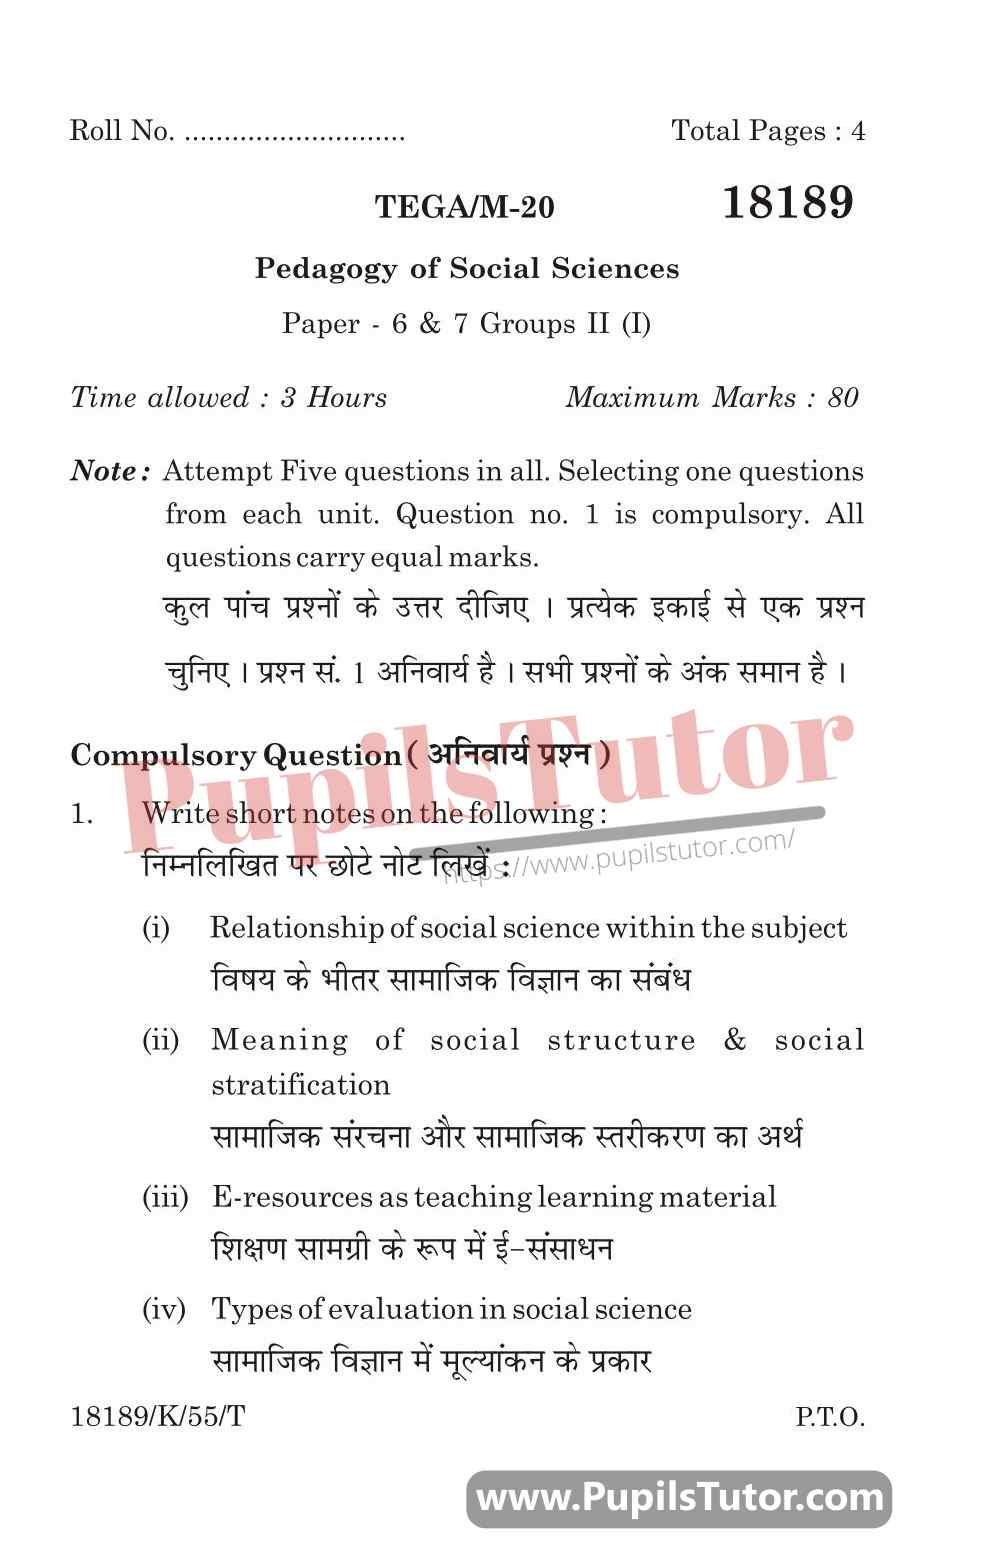 KUK (Kurukshetra University, Haryana) Pedagogy Of Social Science Question Paper 2020 For B.Ed 1st And 2nd Year And All The 4 Semesters In English And Hindi Medium Free Download PDF - Page 1 - Pupils Tutor